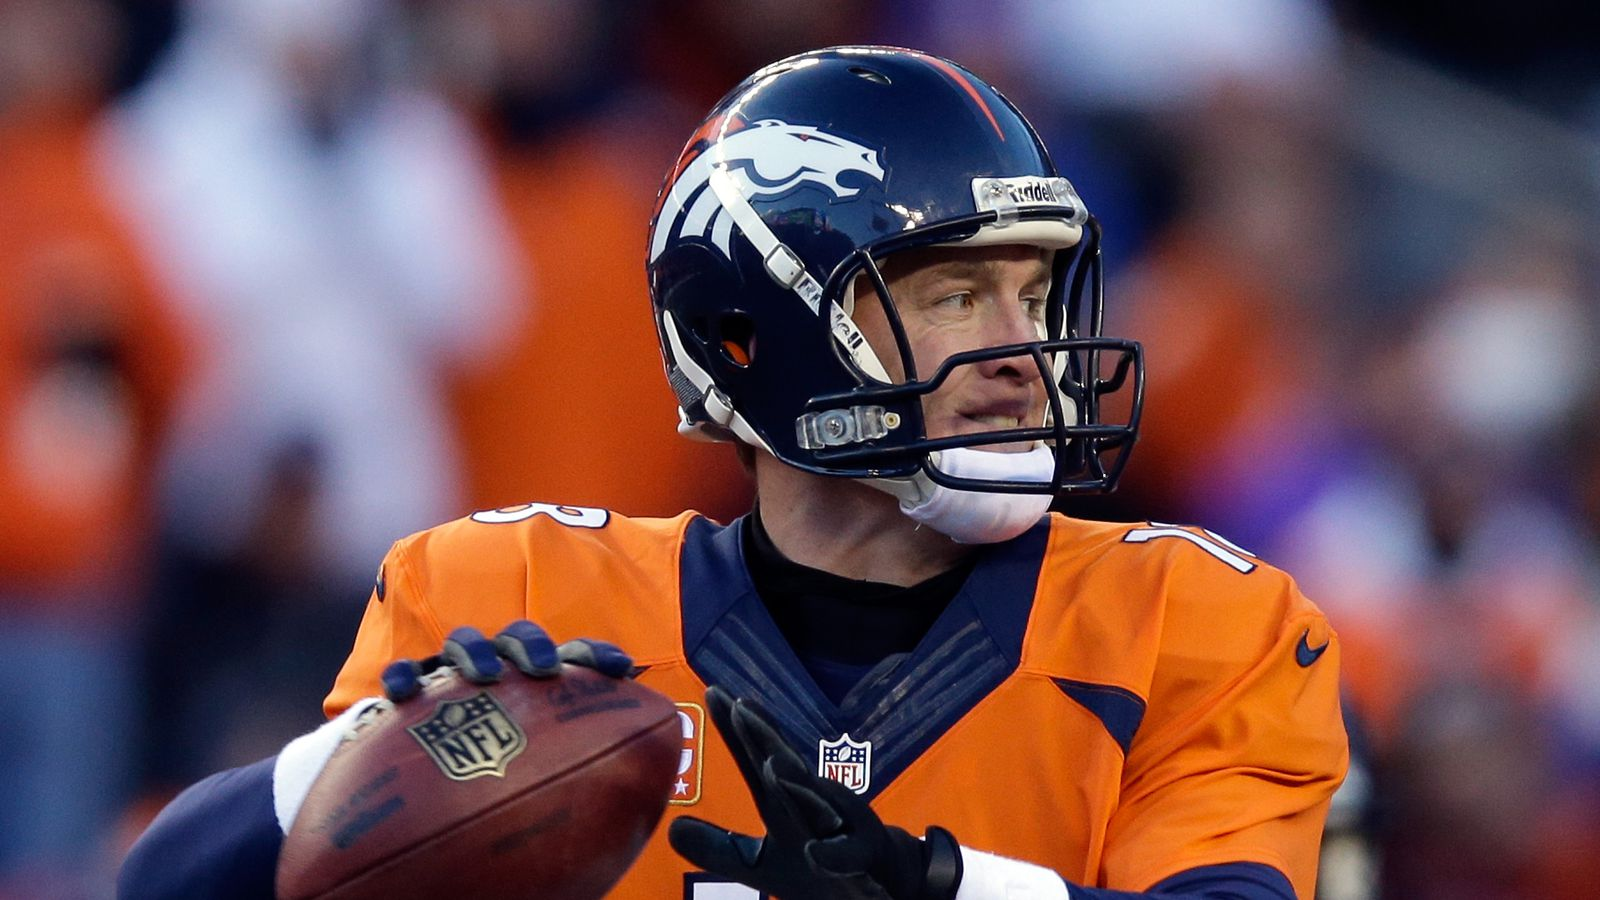 Nfl Playoff Bracket And Schedule 2014 Broncos And